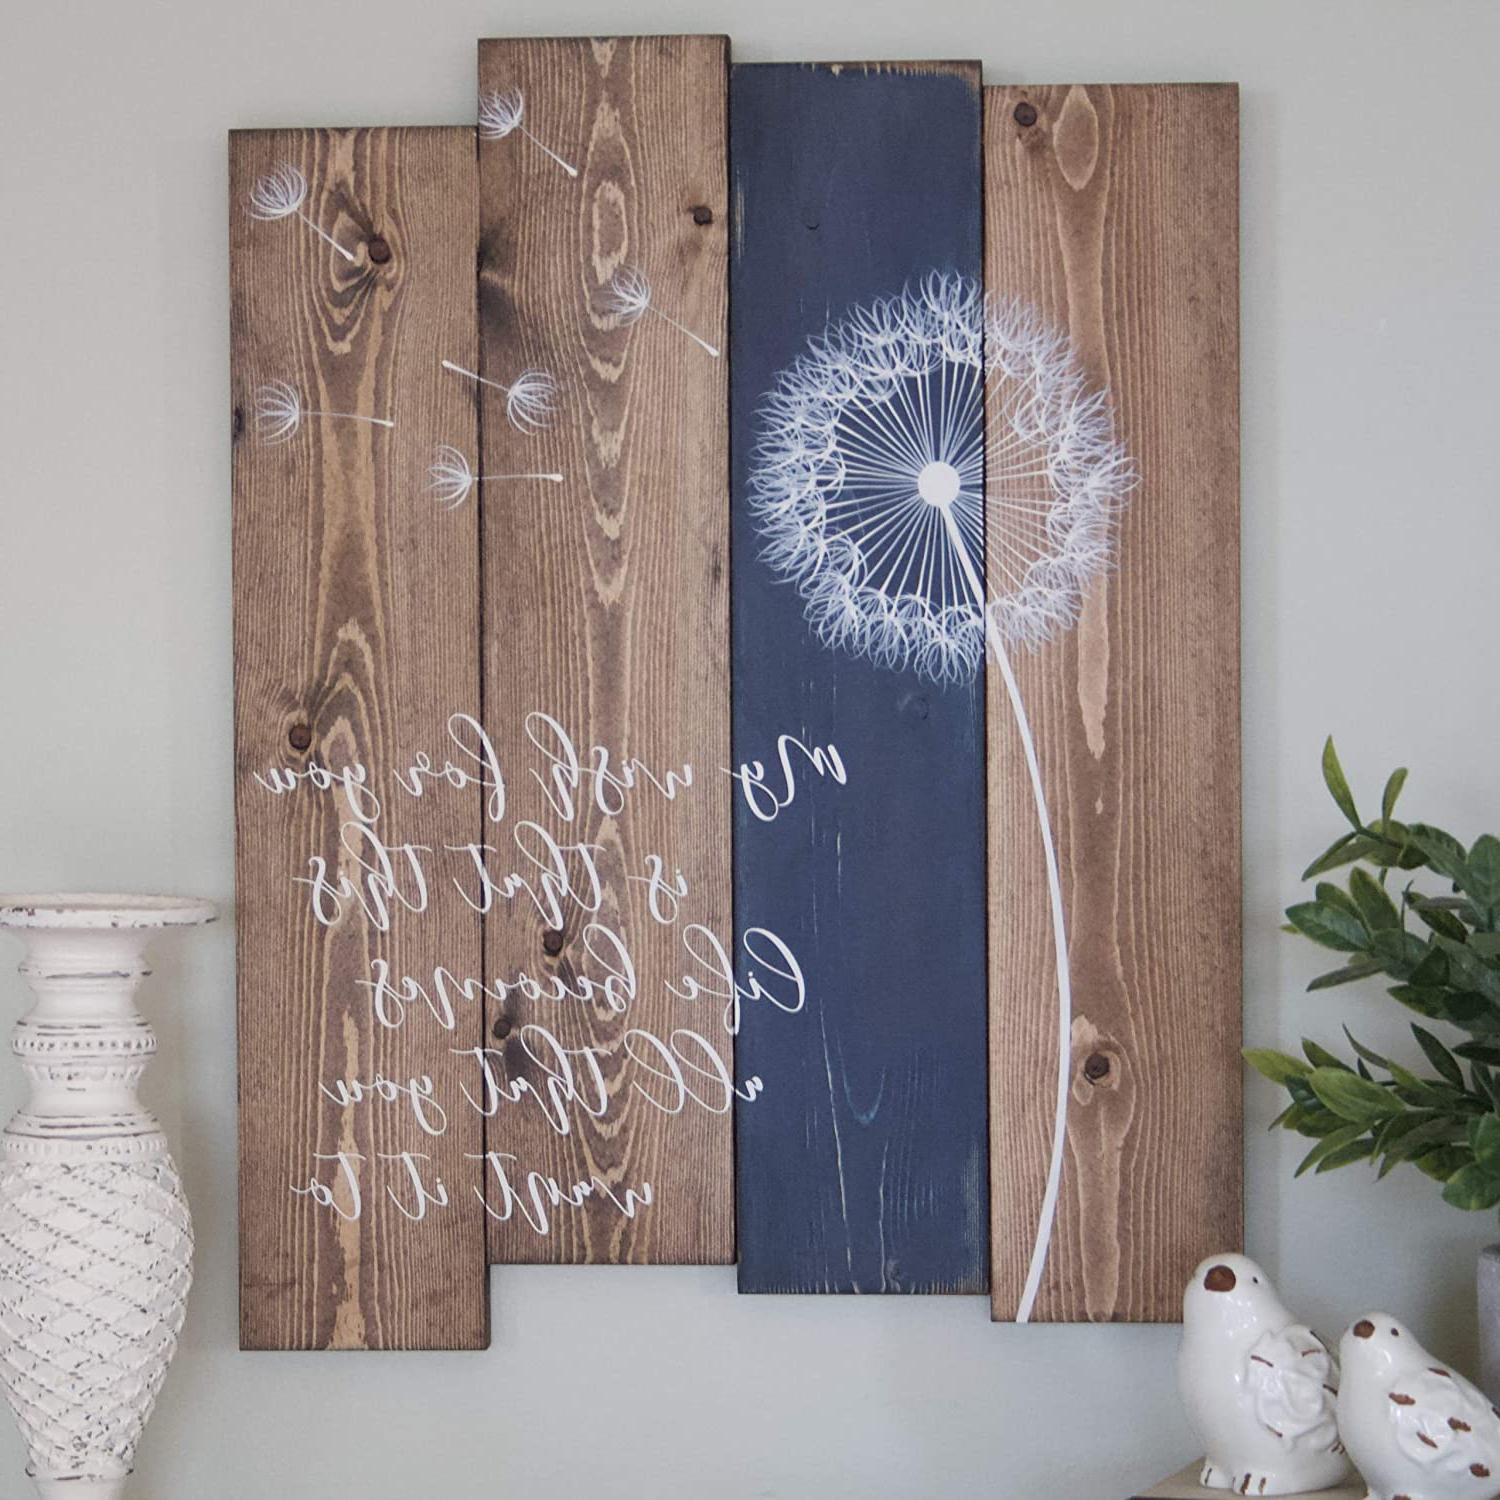 Amazon: My Wish For You Lyrics Wall Decor, Rustic Home Intended For Most Popular Ceramic Rustic Wall Décor (View 9 of 20)